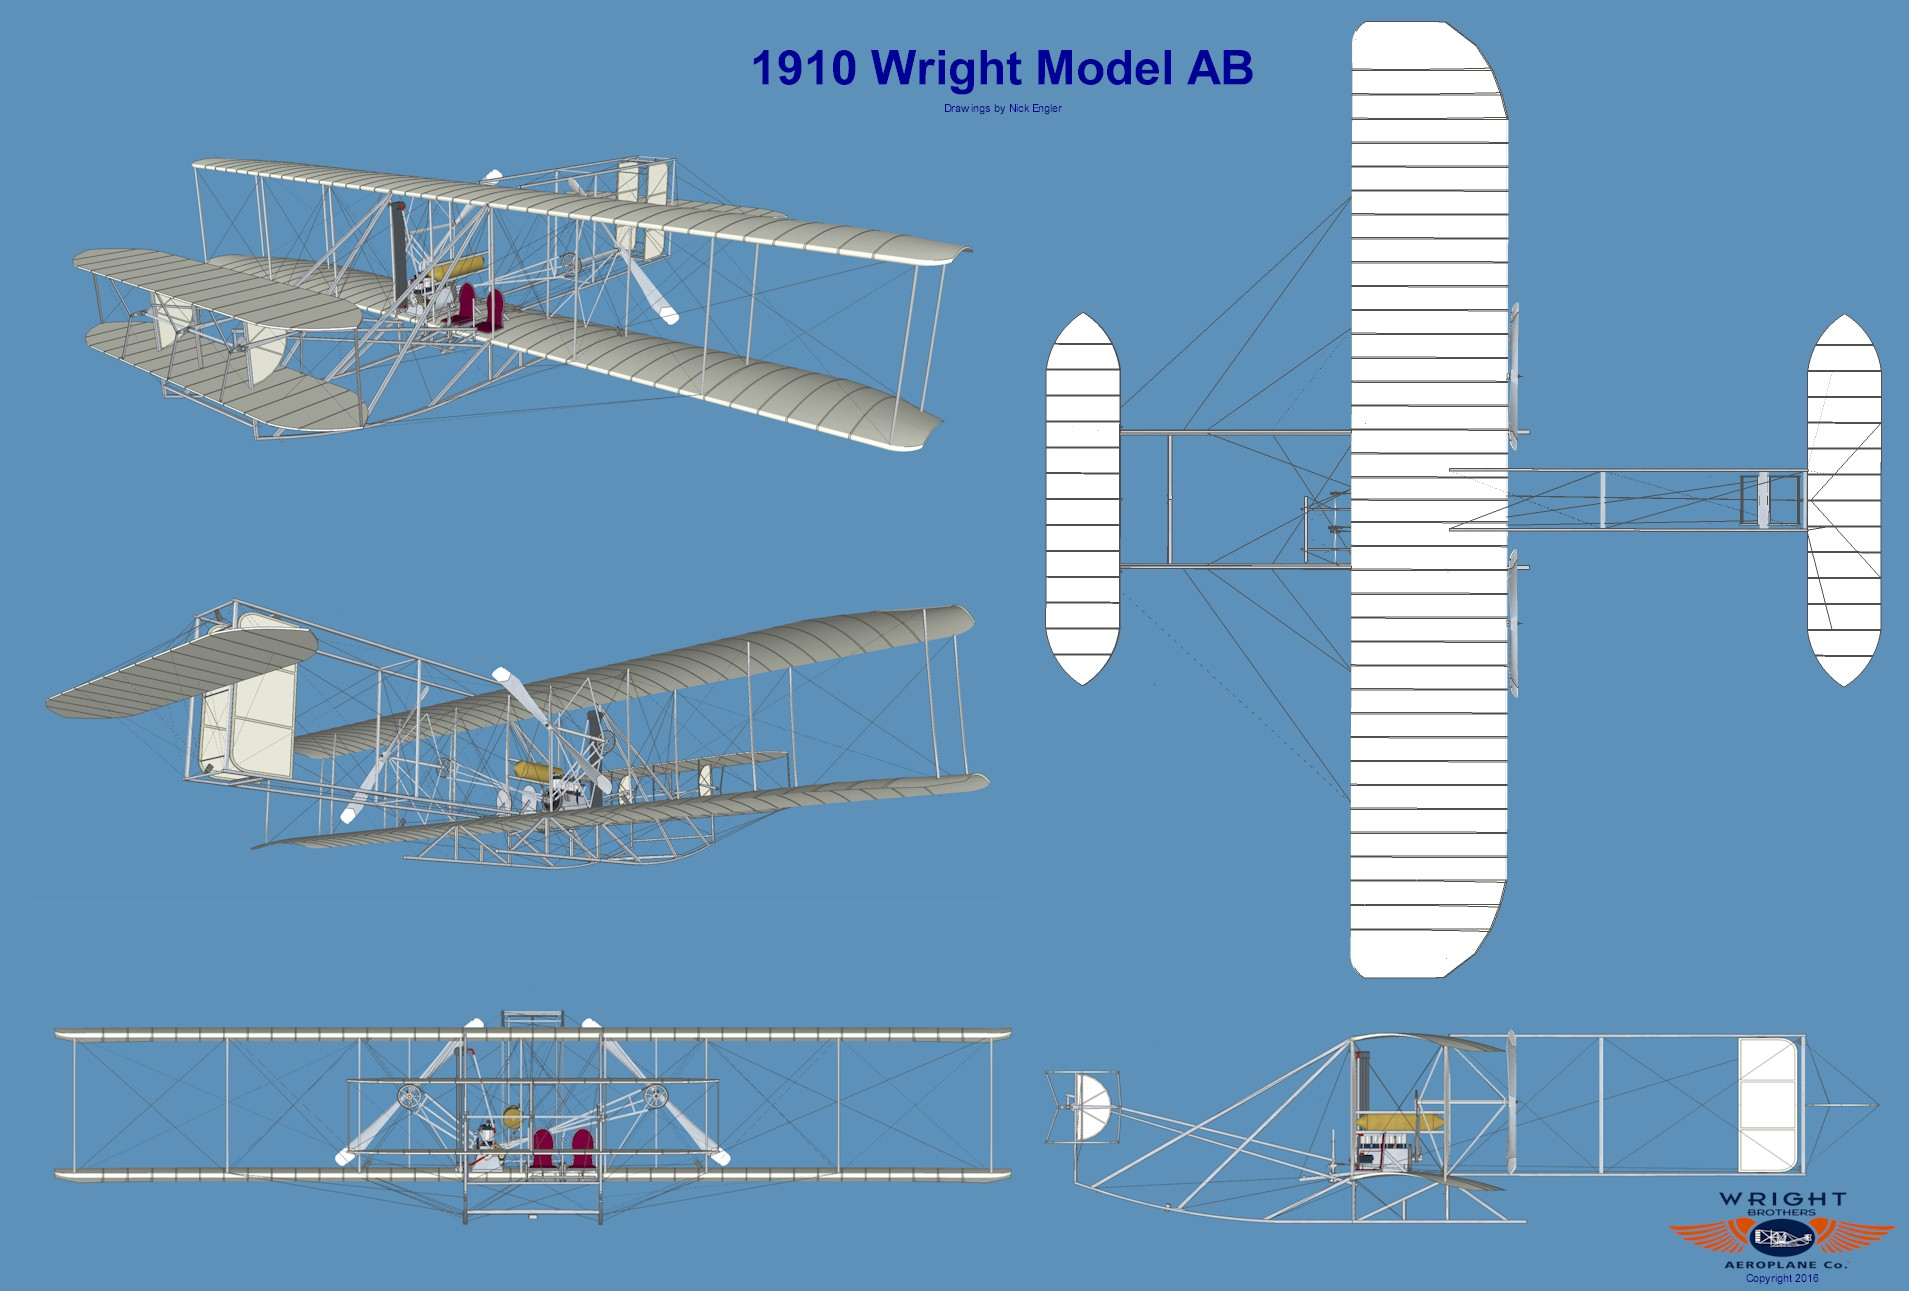 Plc Troubleshooting Maintenance further Allen Bradley Plc Flasher also Edge Triggered in addition Joseph Dale weebly besides Diagram Of Wright Brothers Plane. on ab ladder logic